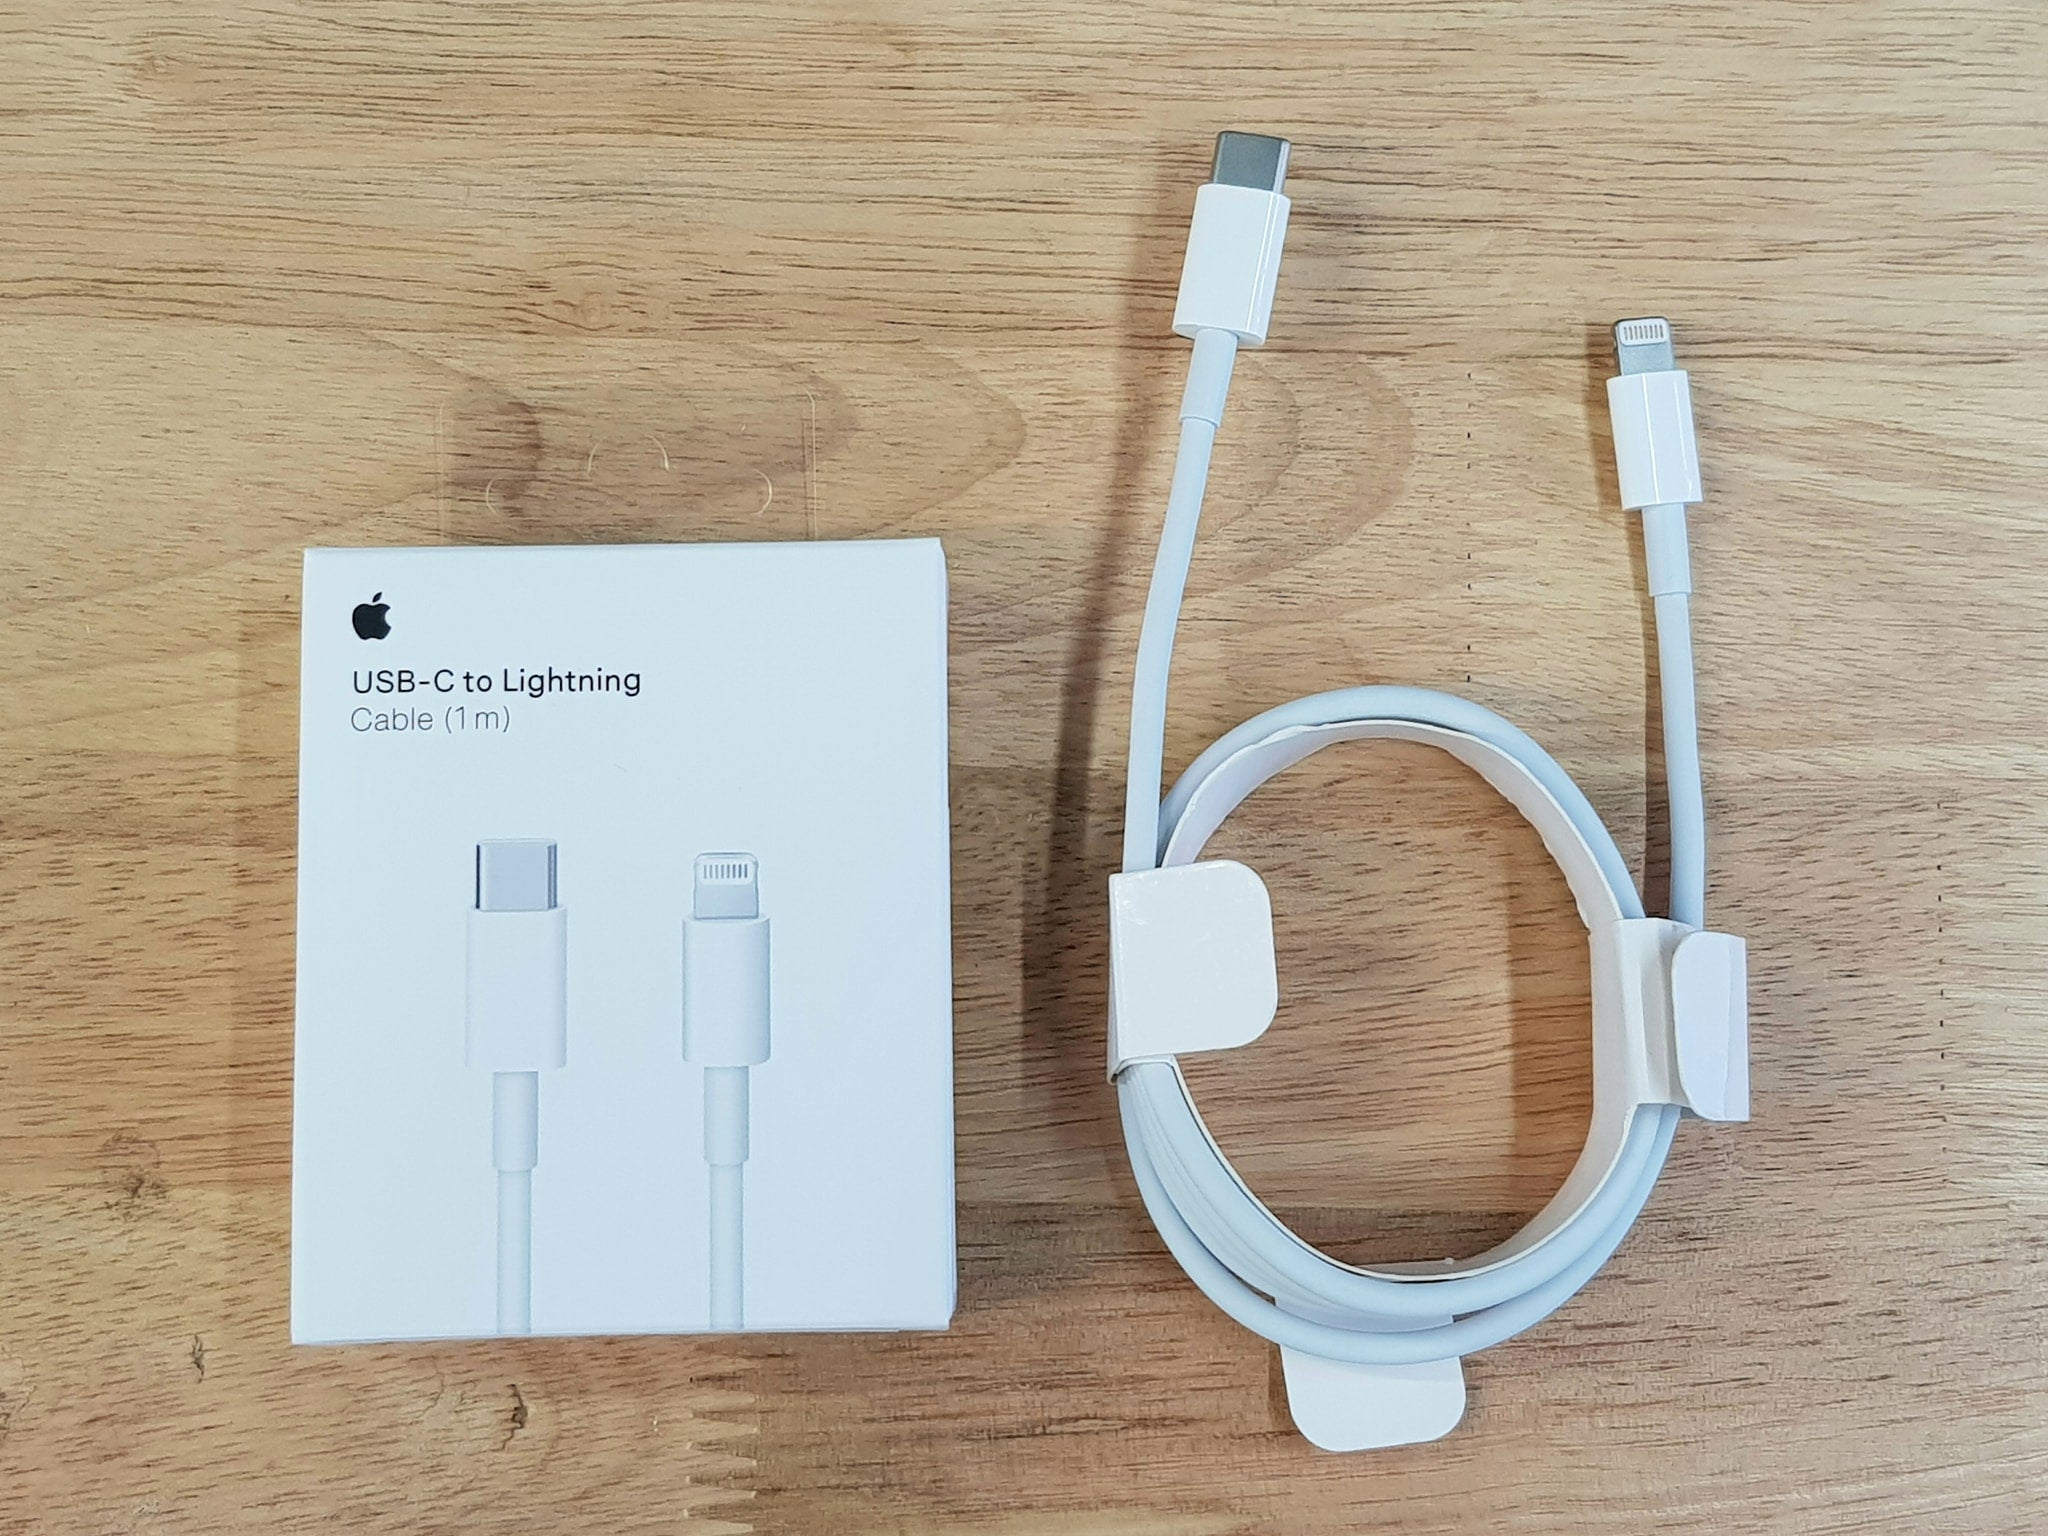 i990 Apple Original USB-C to Lightning Cable (1m) - i-s-mart.com | No.1 Branded Online Shop in Cambodia